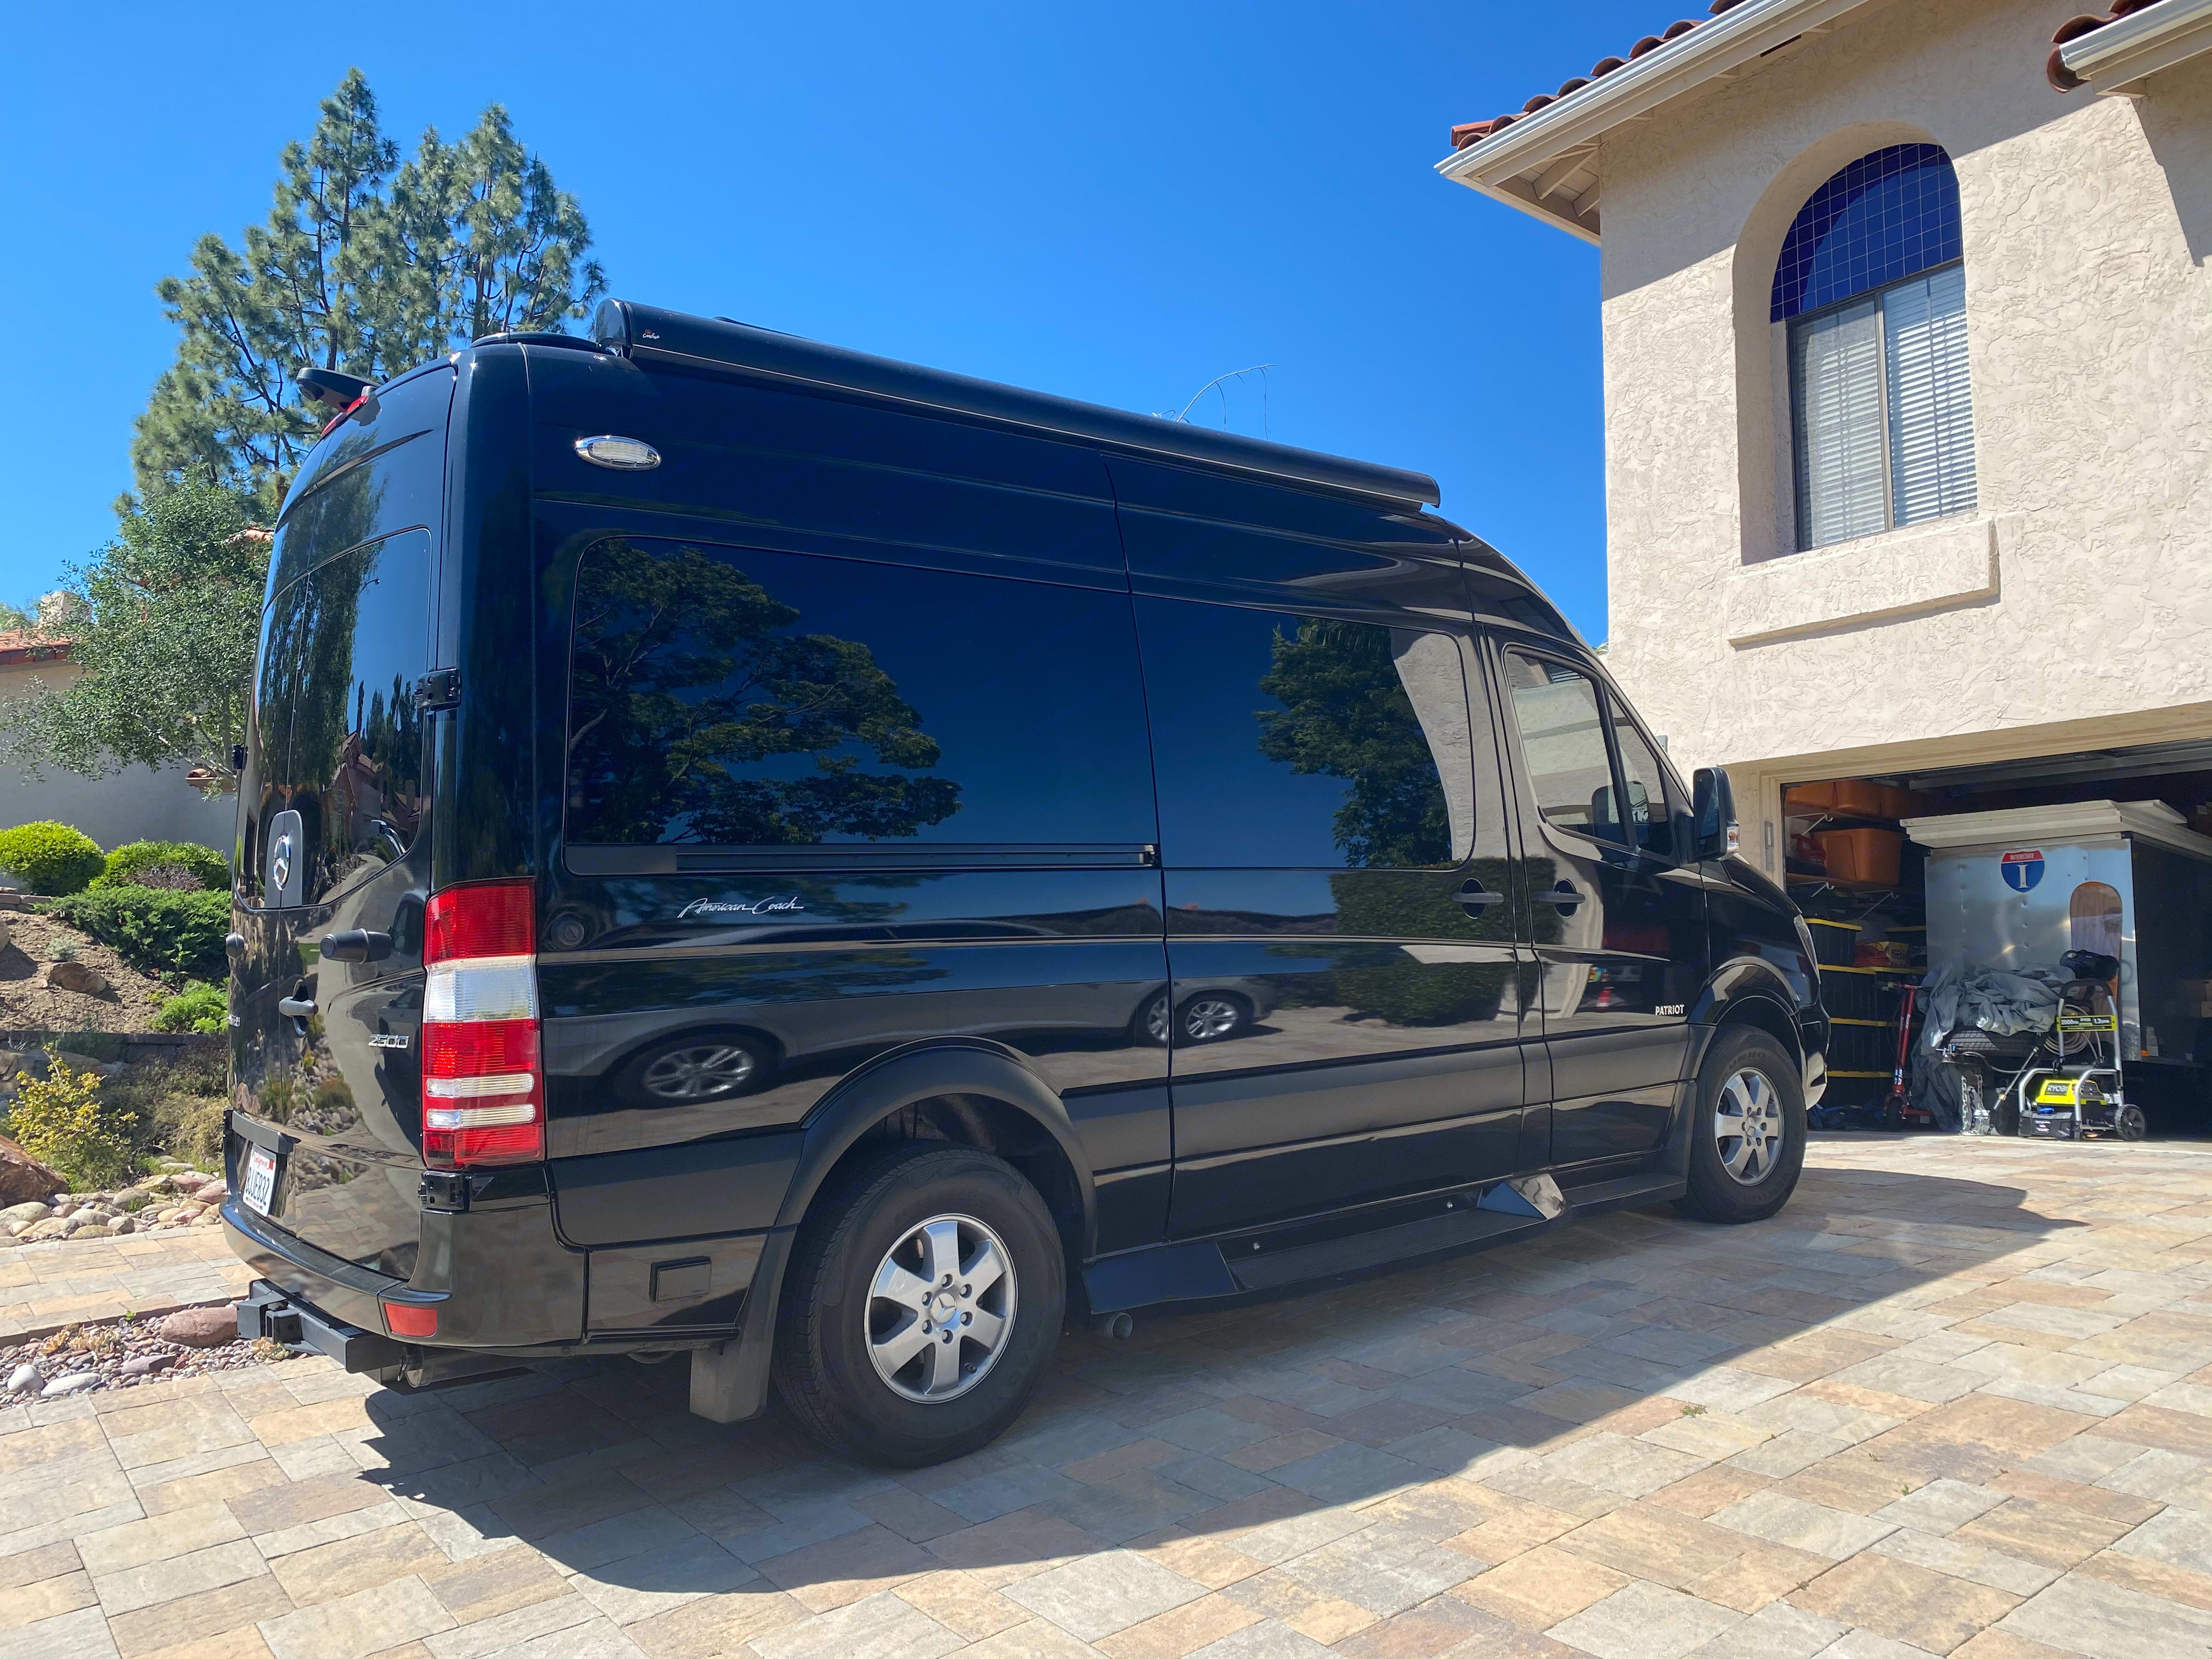 Automatic Awning with LED lights!. Mercedes-Benz Sprinter 2019